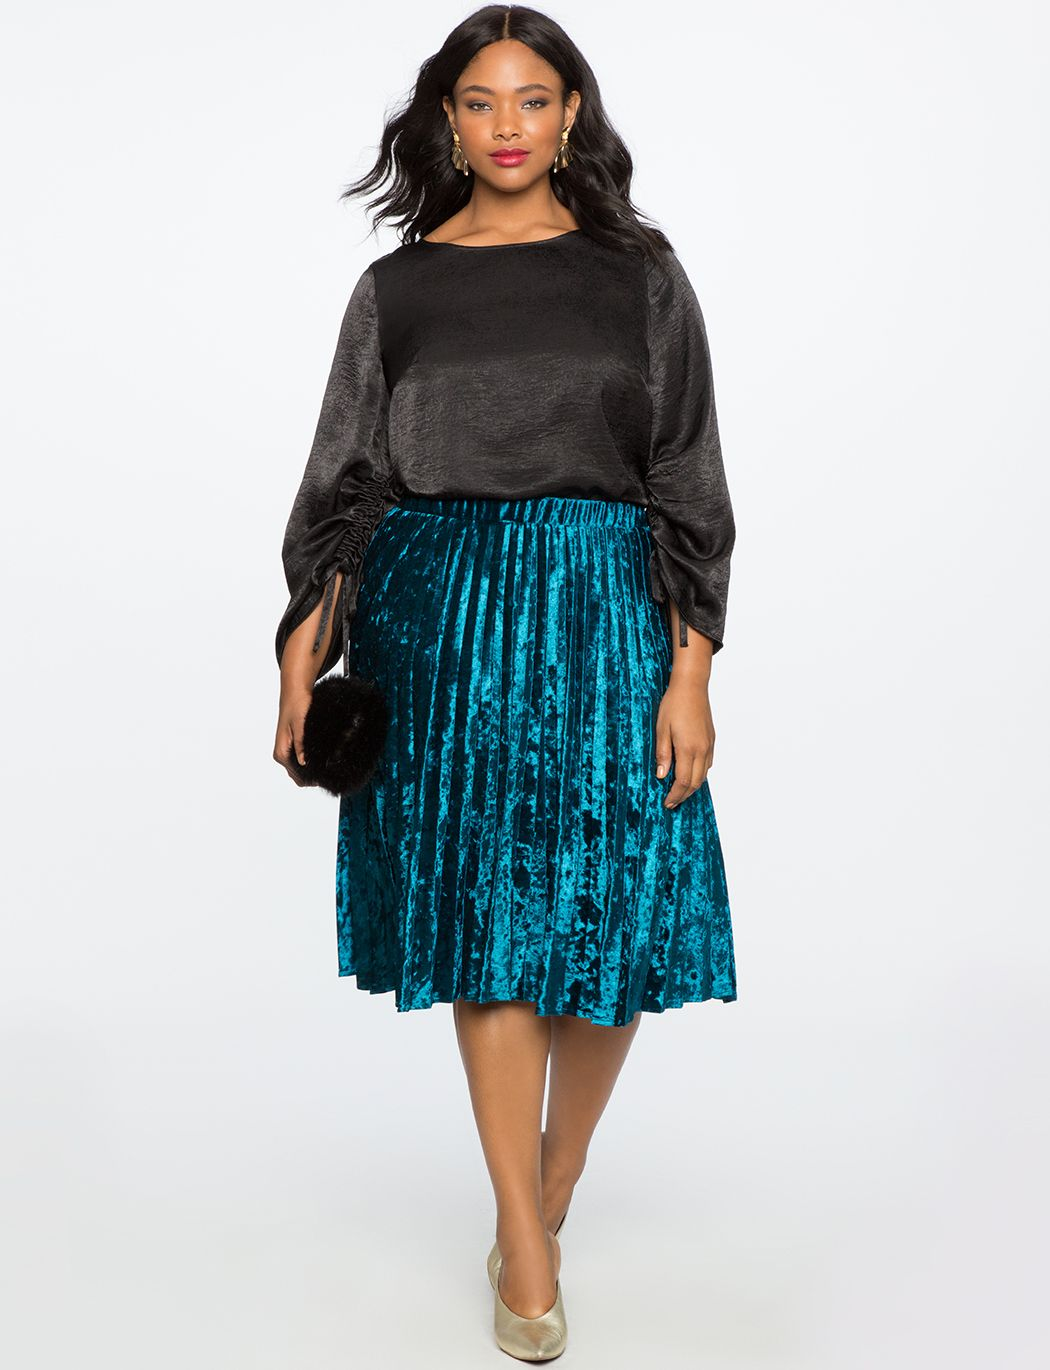 04273c4b3 Eloquii Pleated Crushed Velvet Midi Skirt Teal